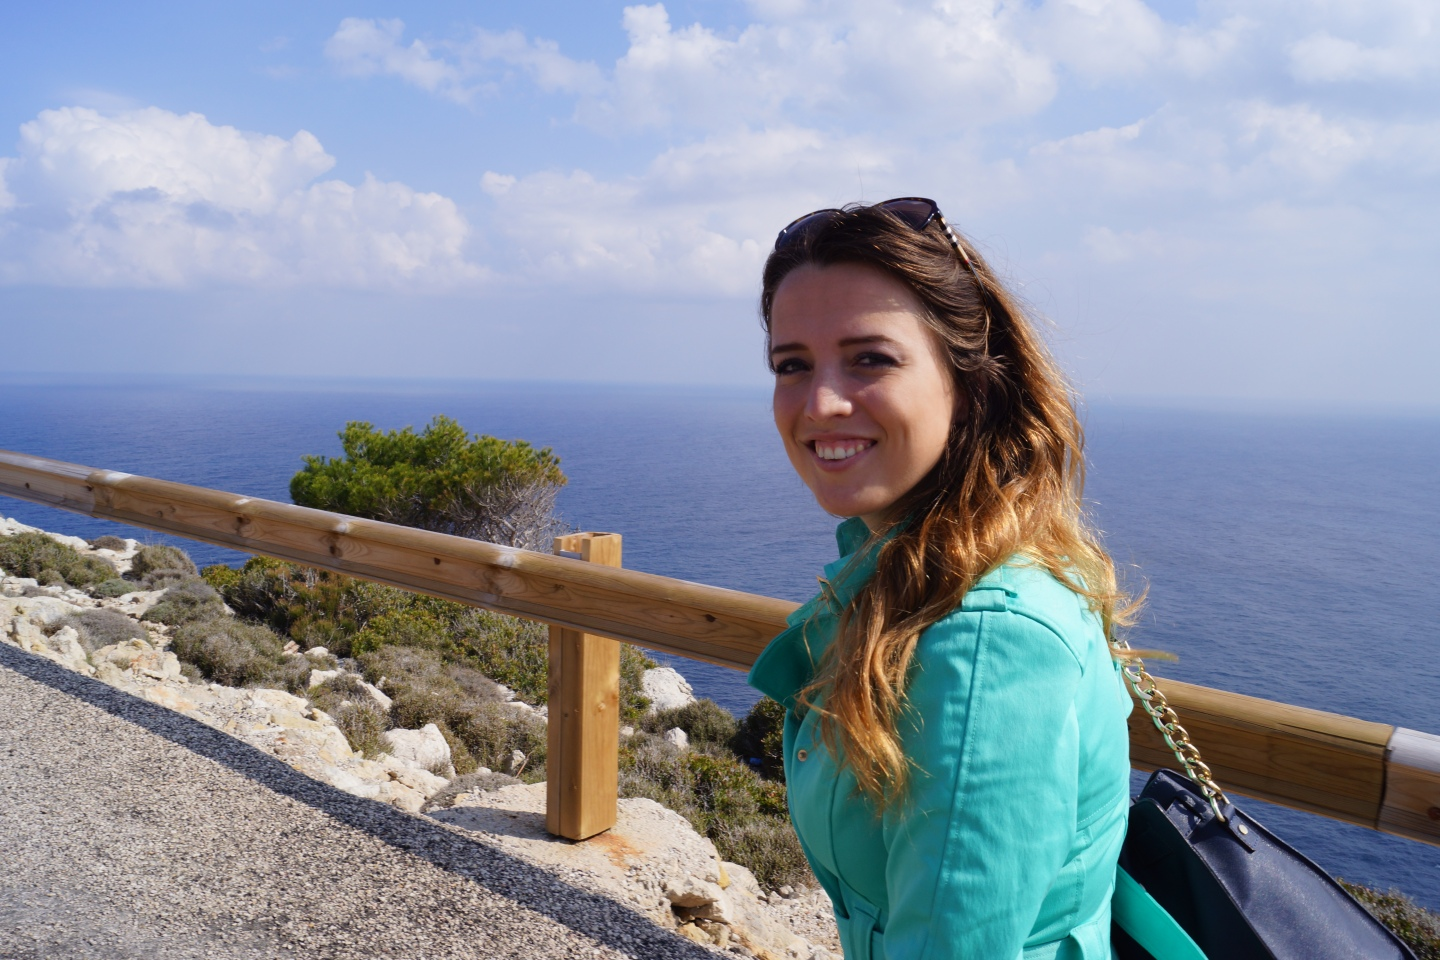 Cap de Formentor - Dutchbloggeronthemove